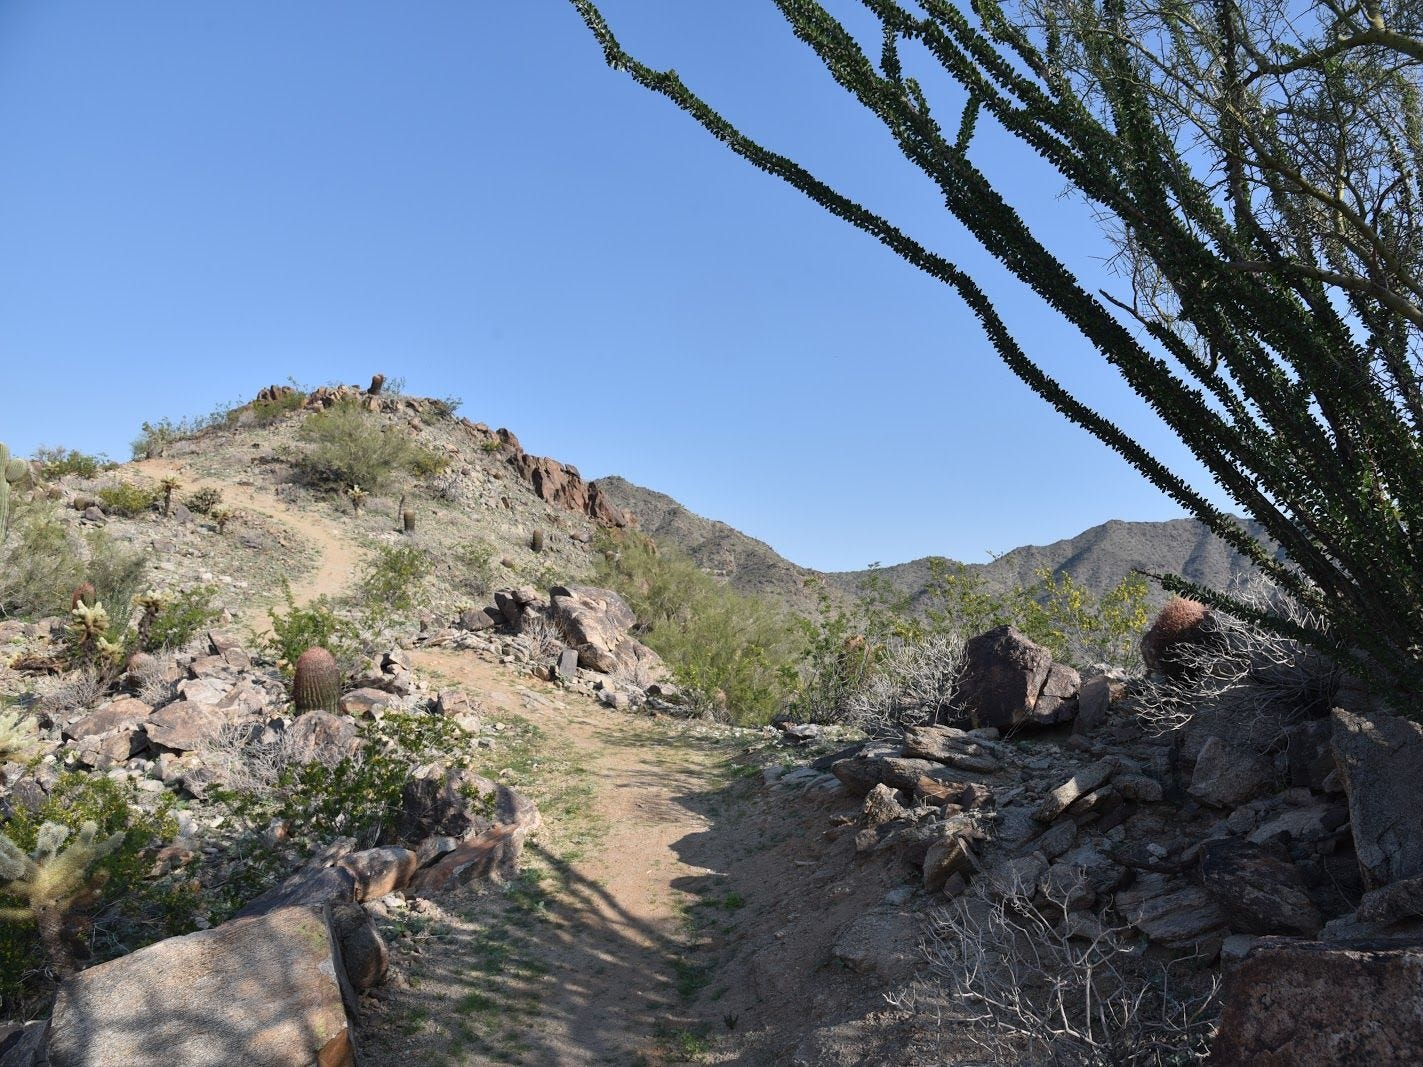 TAKE A HIKE: There's a hike for everyone around the Phoenix area. Many, like Skyline Regional Park's Pyrite Trail (pictured), are within an hour's drive of the city center.